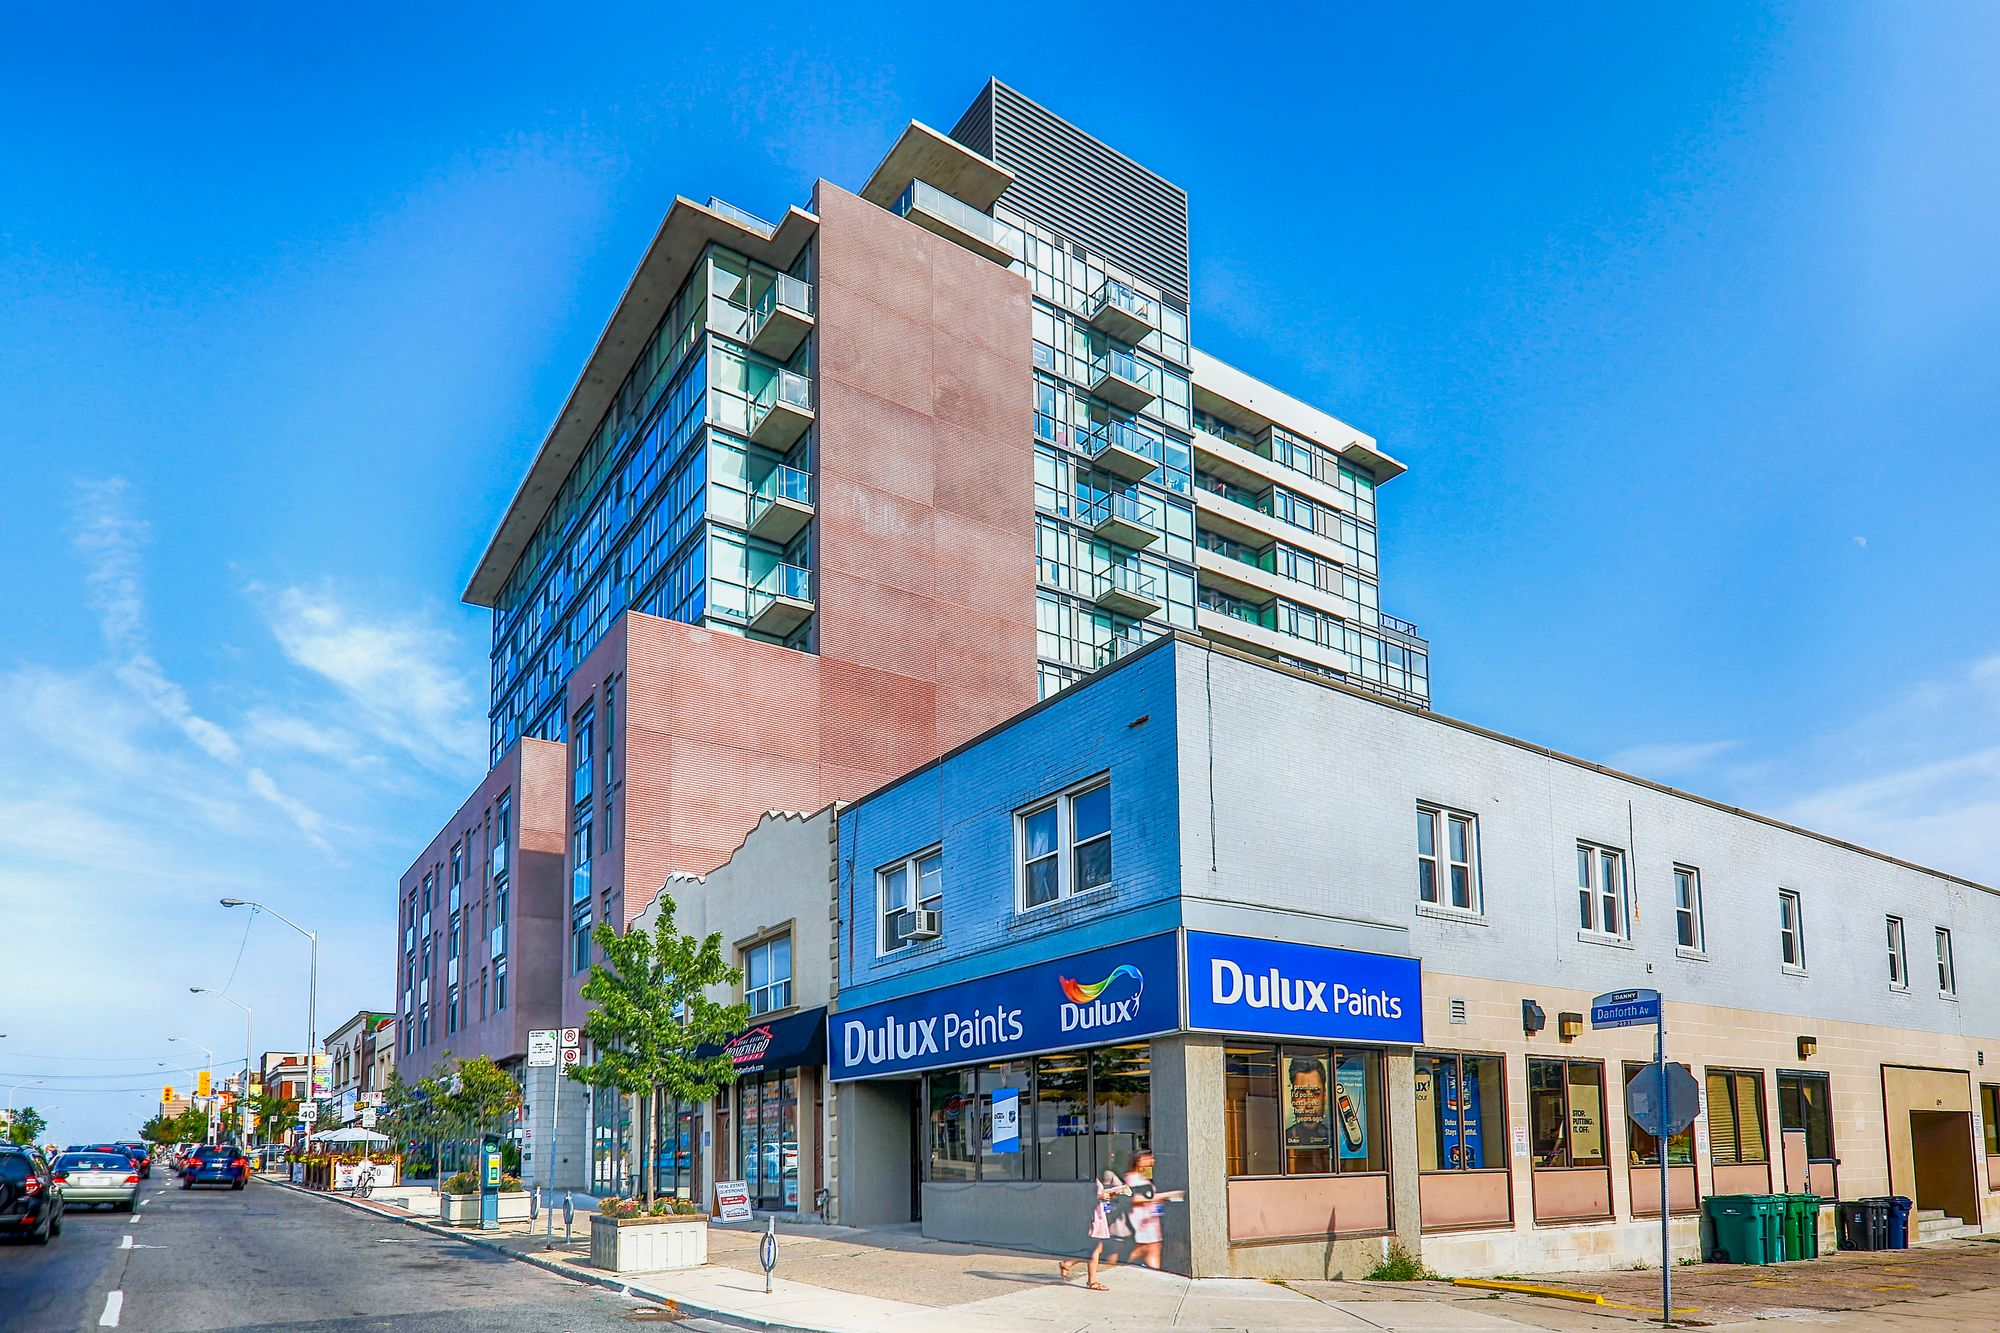 2055 Danforth Avenue. This condo at Carmelina Condos is located in  East End, Toronto - image #2 of 5 by Strata.ca